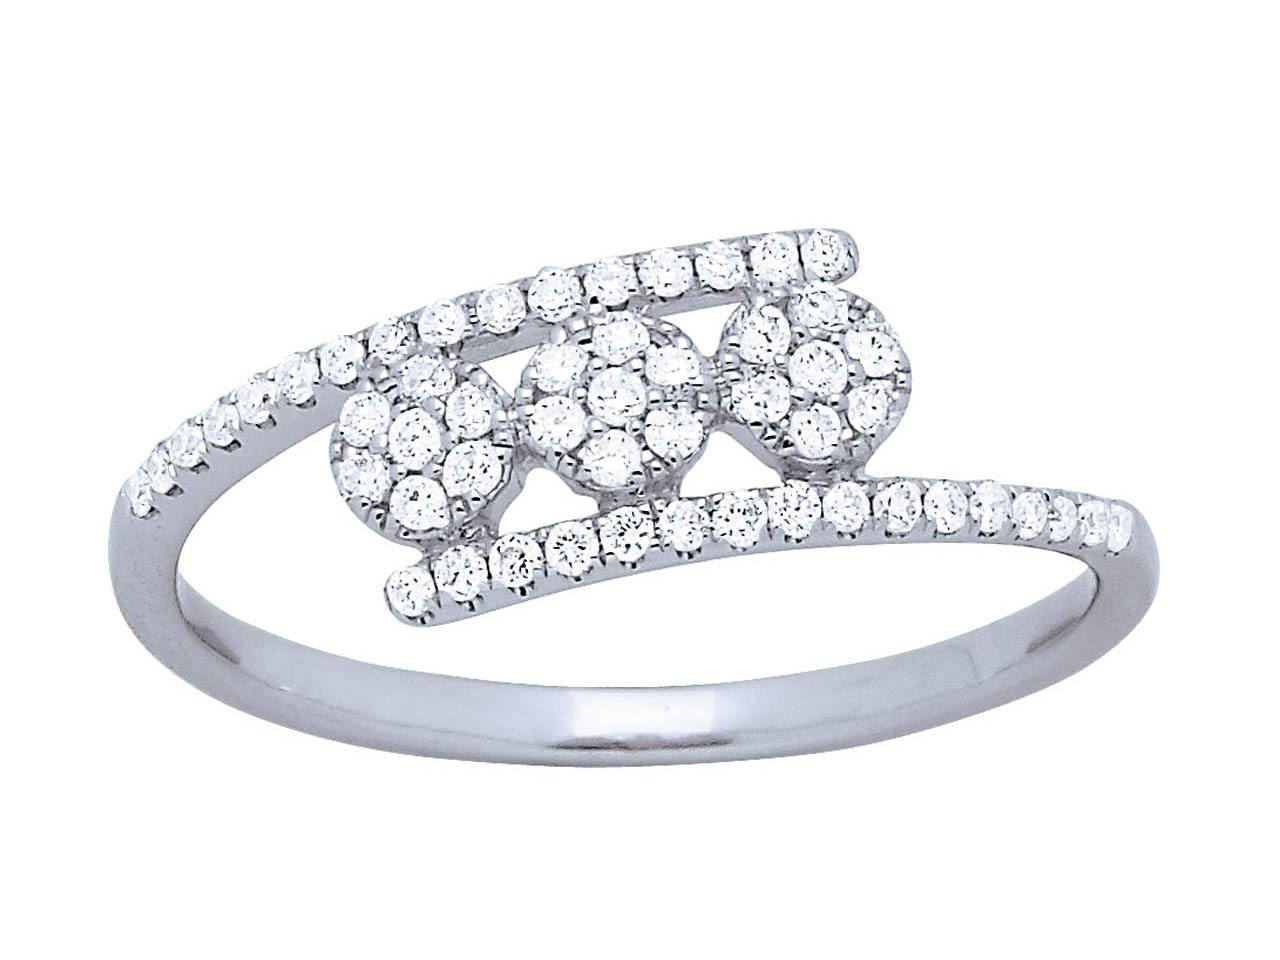 Bague trilogie tout sertie diamants, Or gris, diamants 0,22 ct, doigt 54